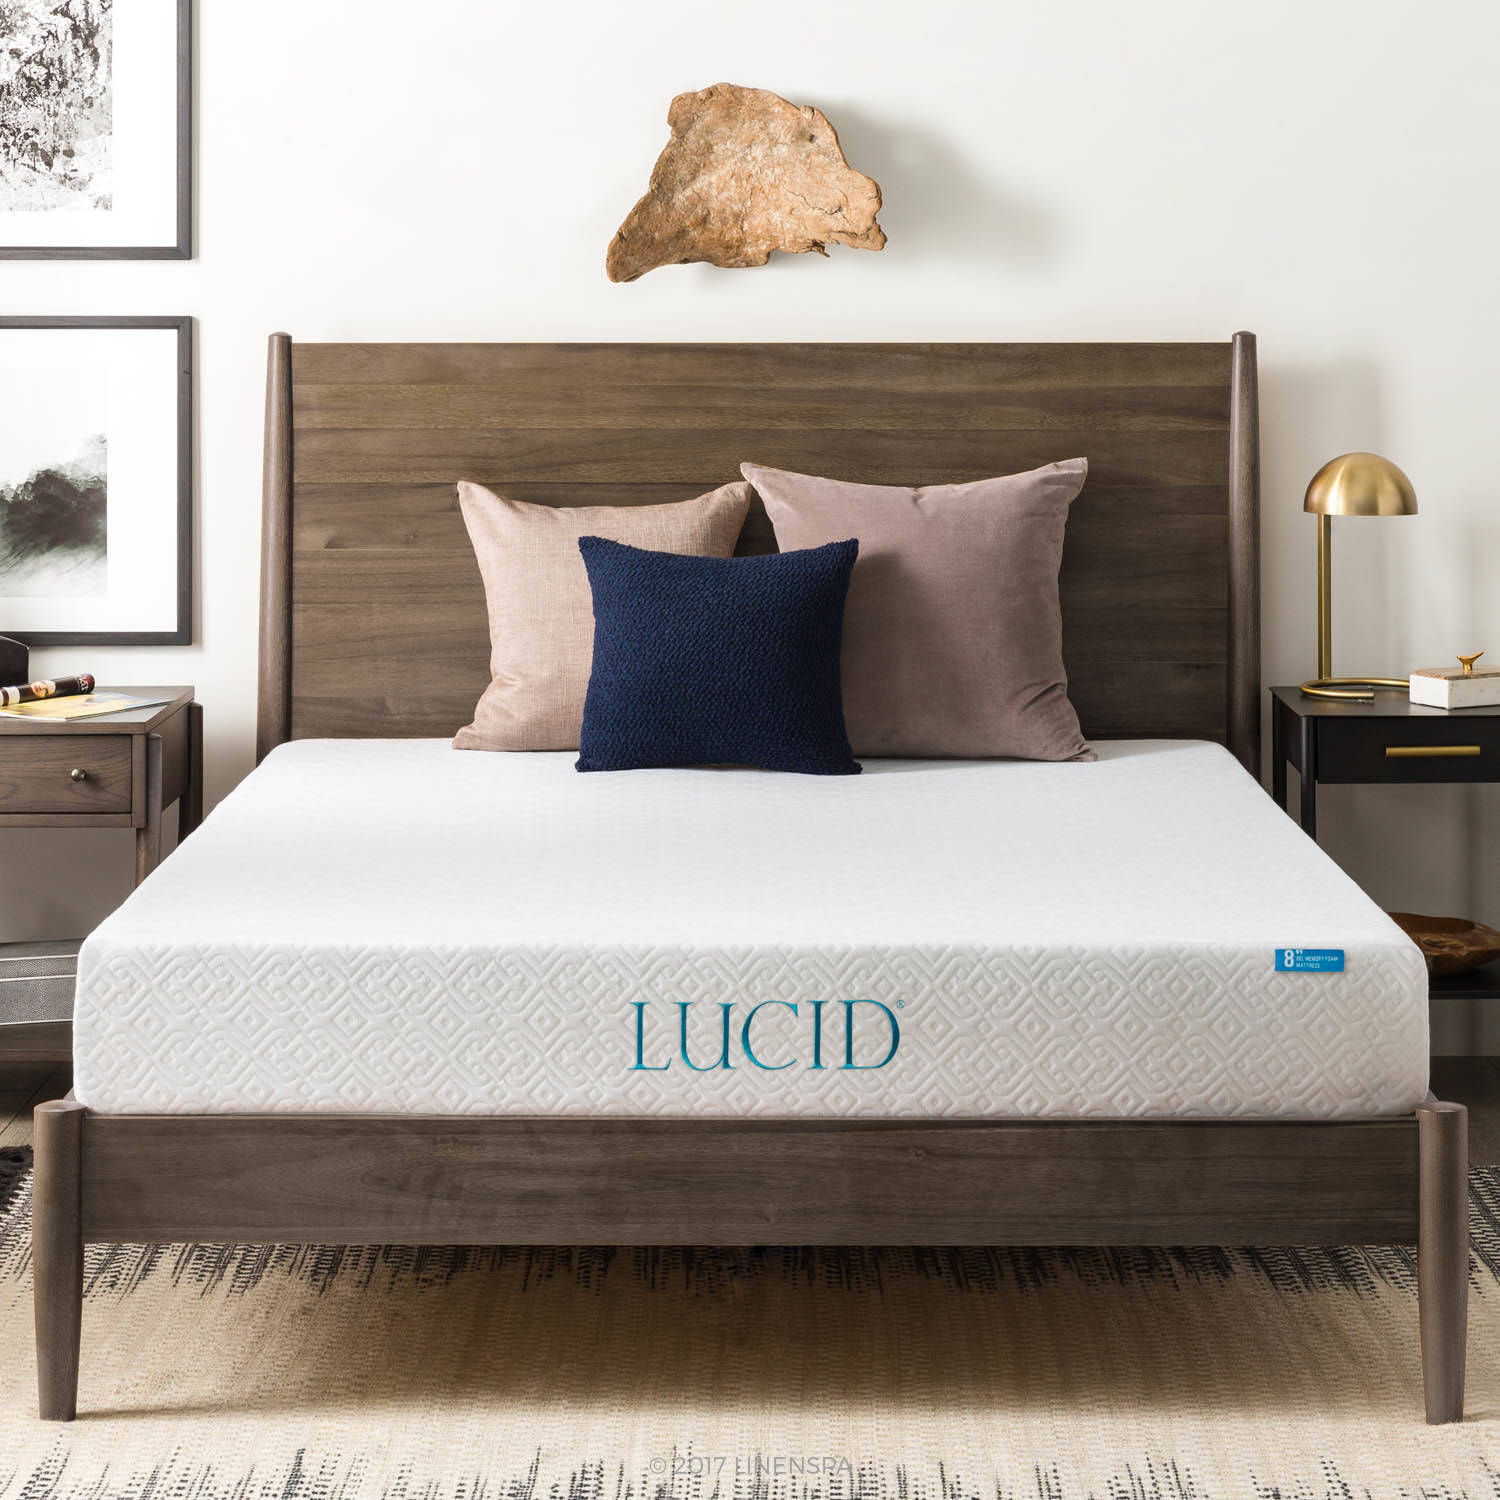 "Lucid 8"" Dual Layered Memory Foam Mattress, Multiple Sizes by CVB Inc."